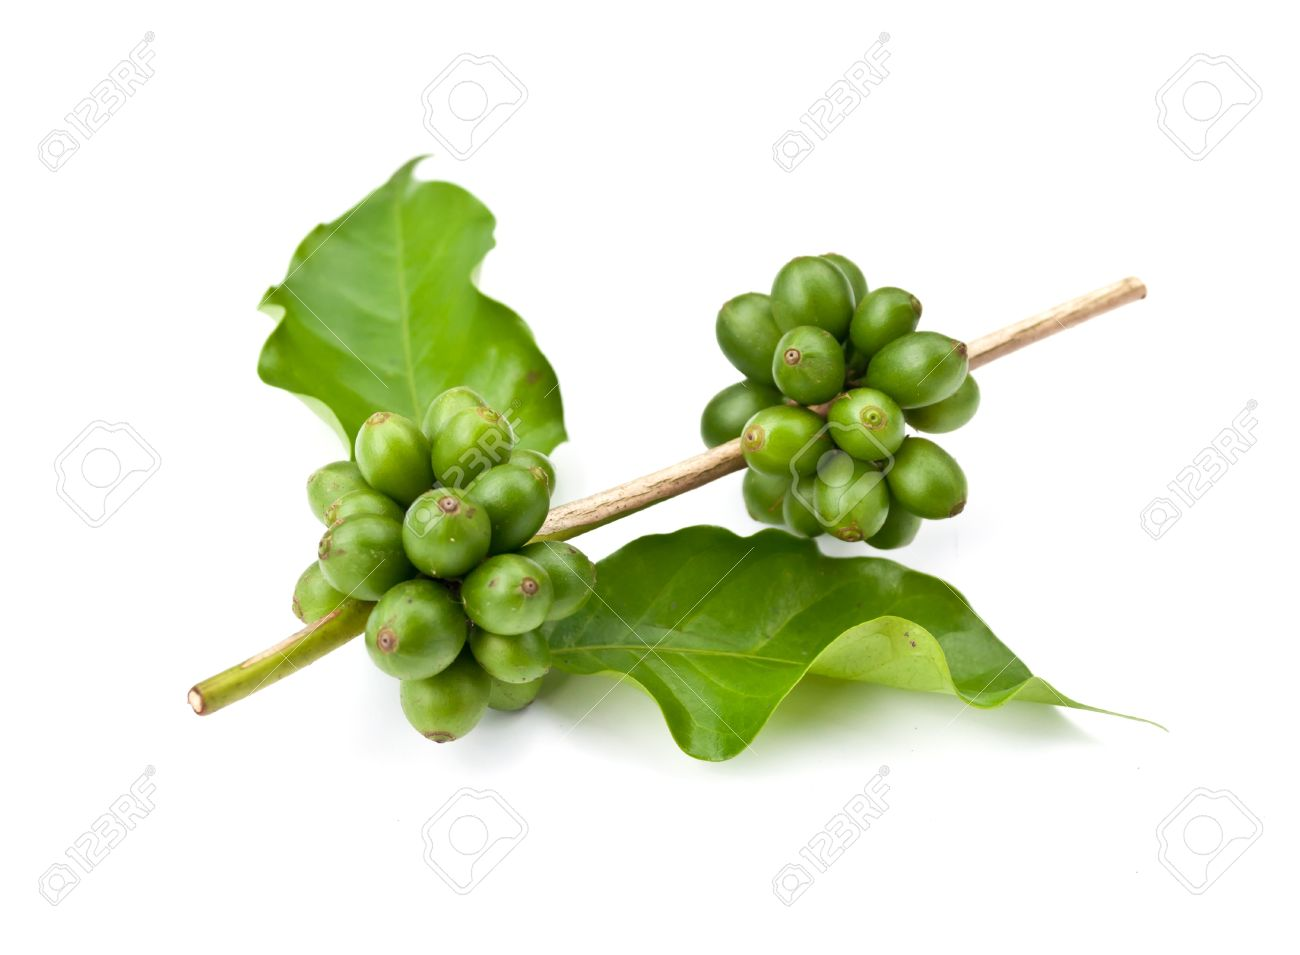 coffee beans and leaf on white background - 14395567